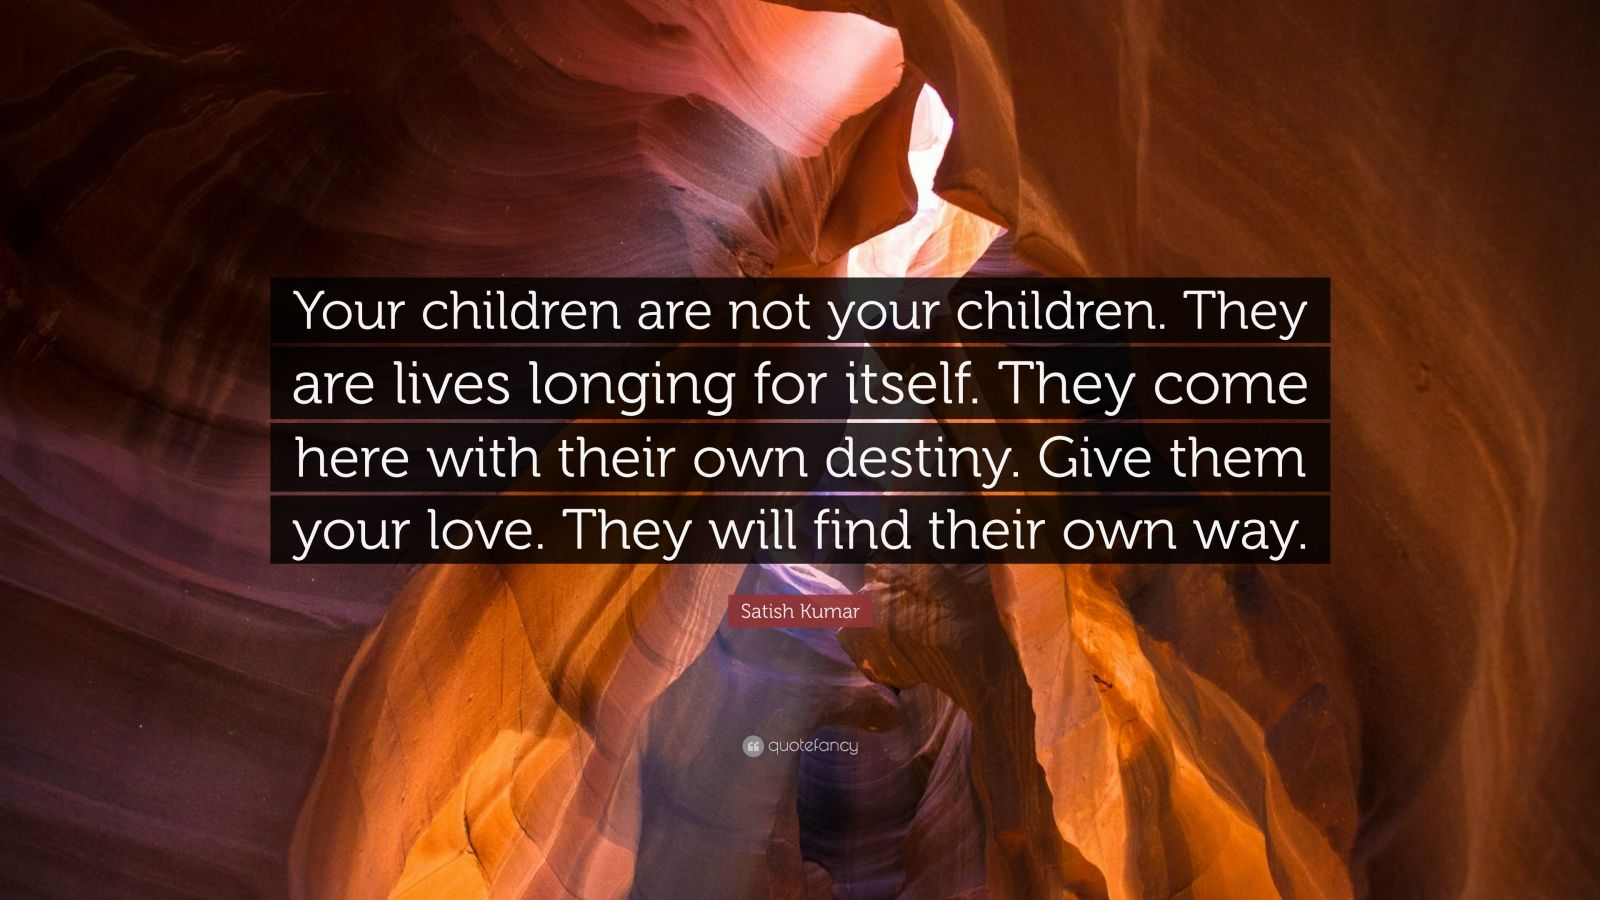 """Satish Kumar Quote: """"Your children are not your children. They are lives longing for itself. They come here with their own destiny. Give them your love. They will find their own way."""""""